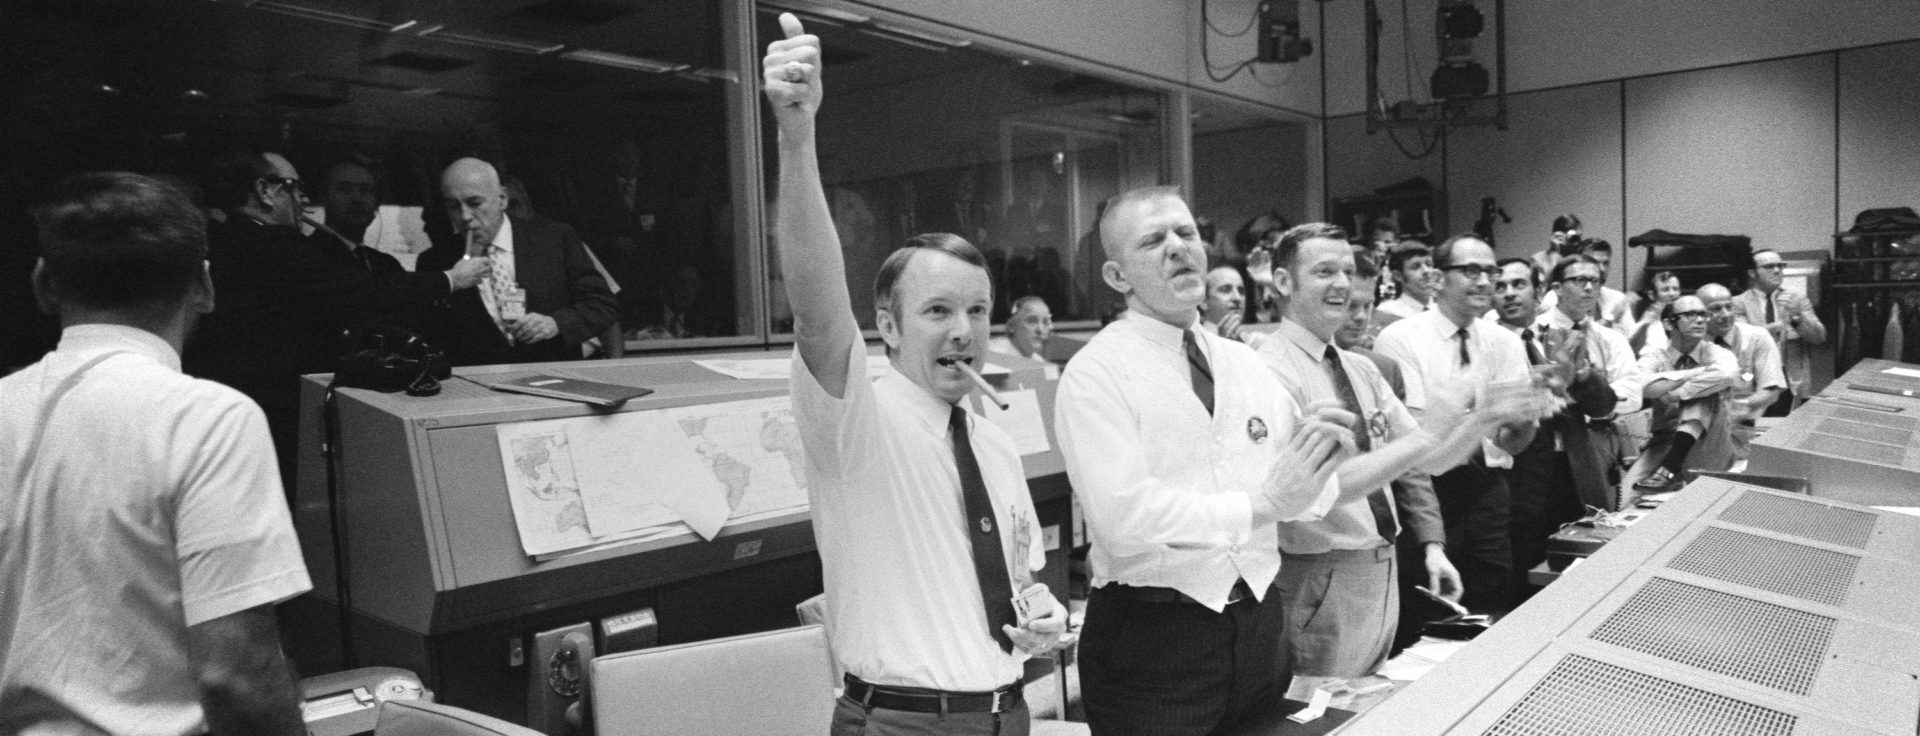 A big thumbs up from mission control